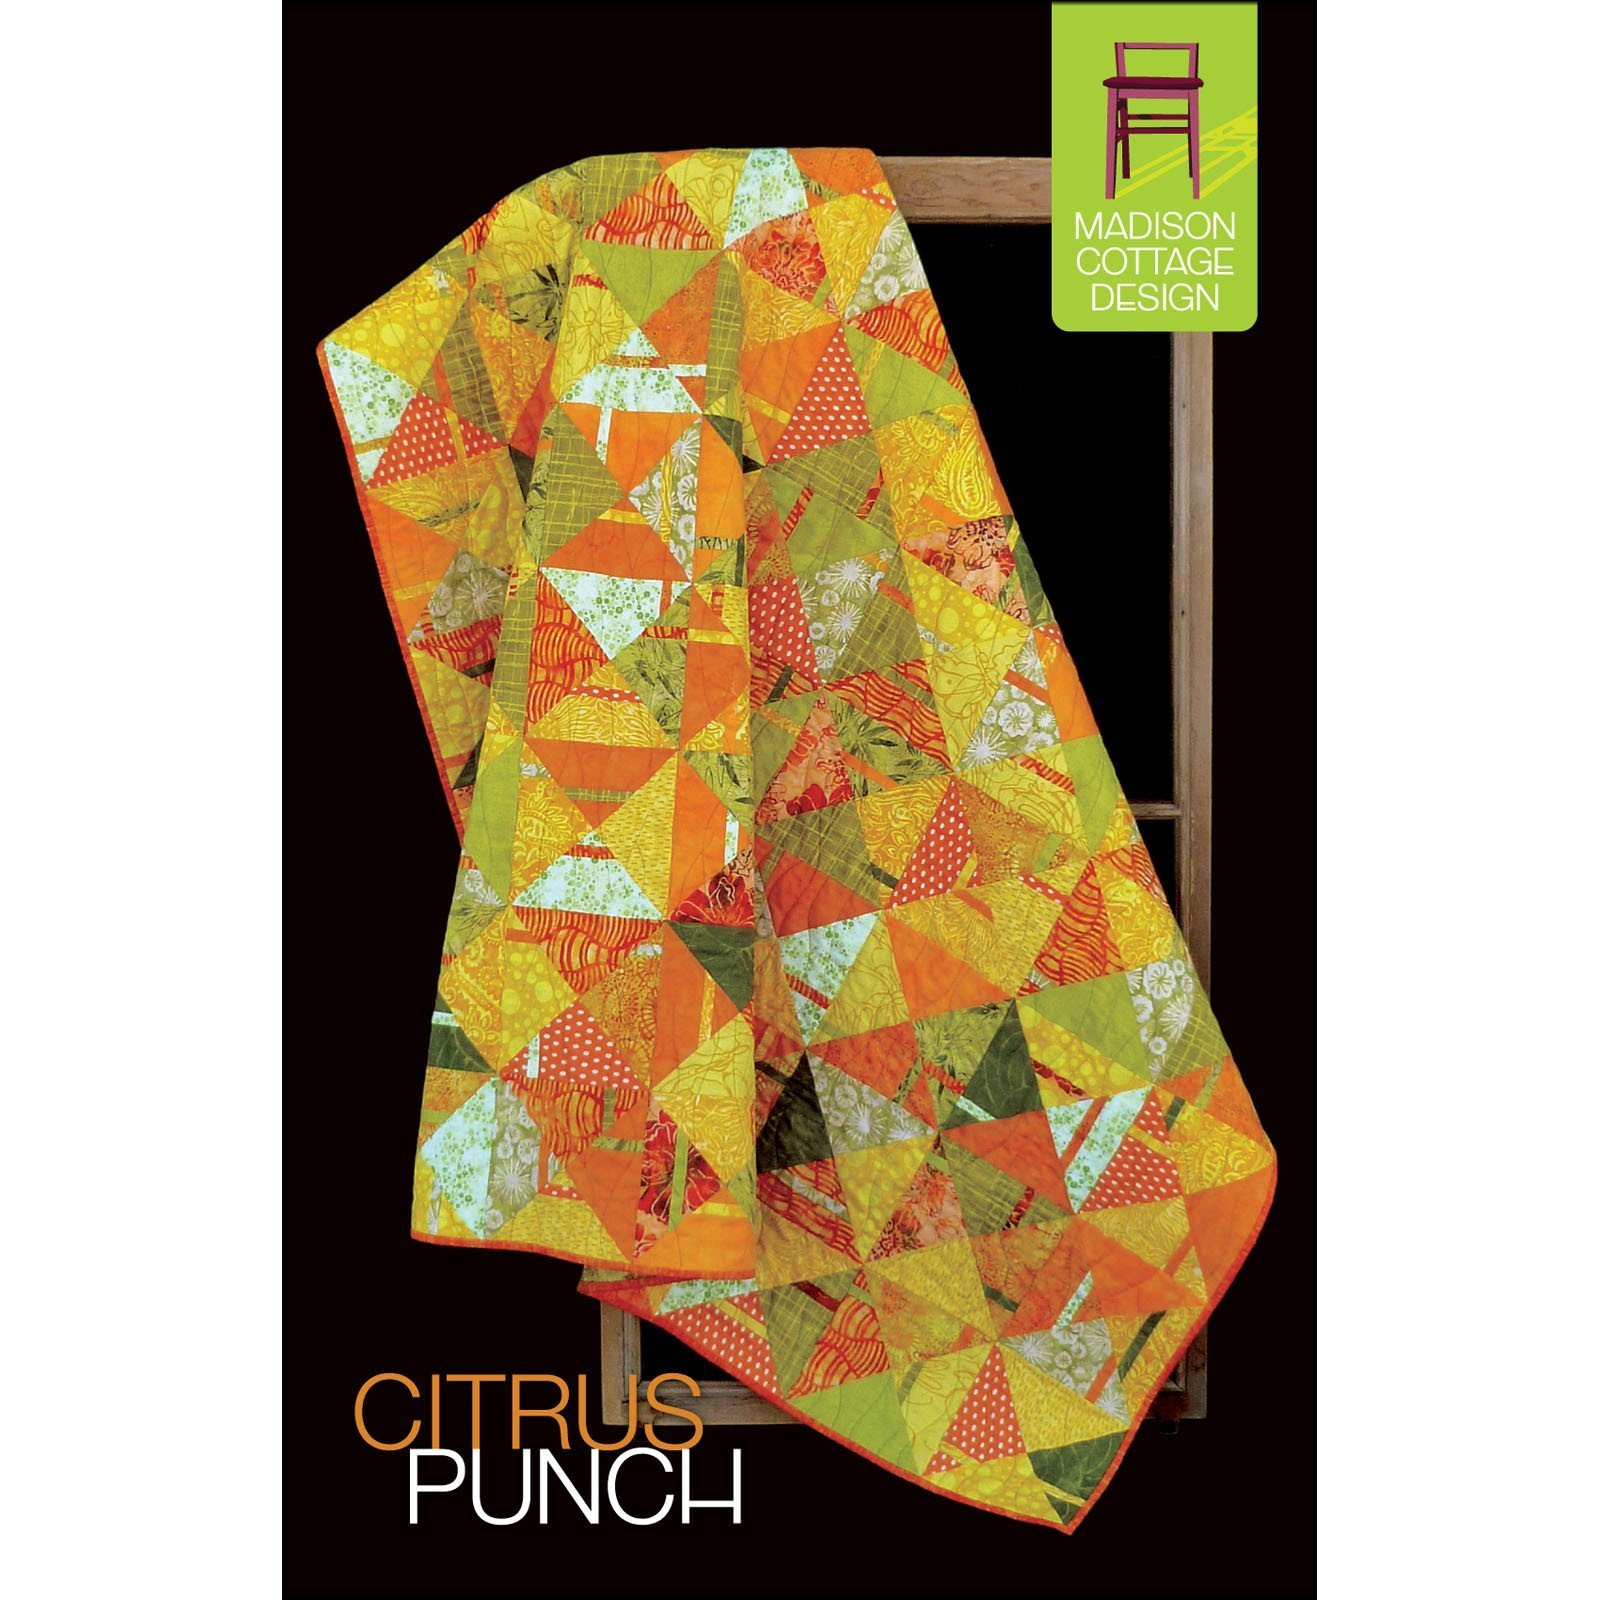 Citrus Punch by Madison Cottage Design